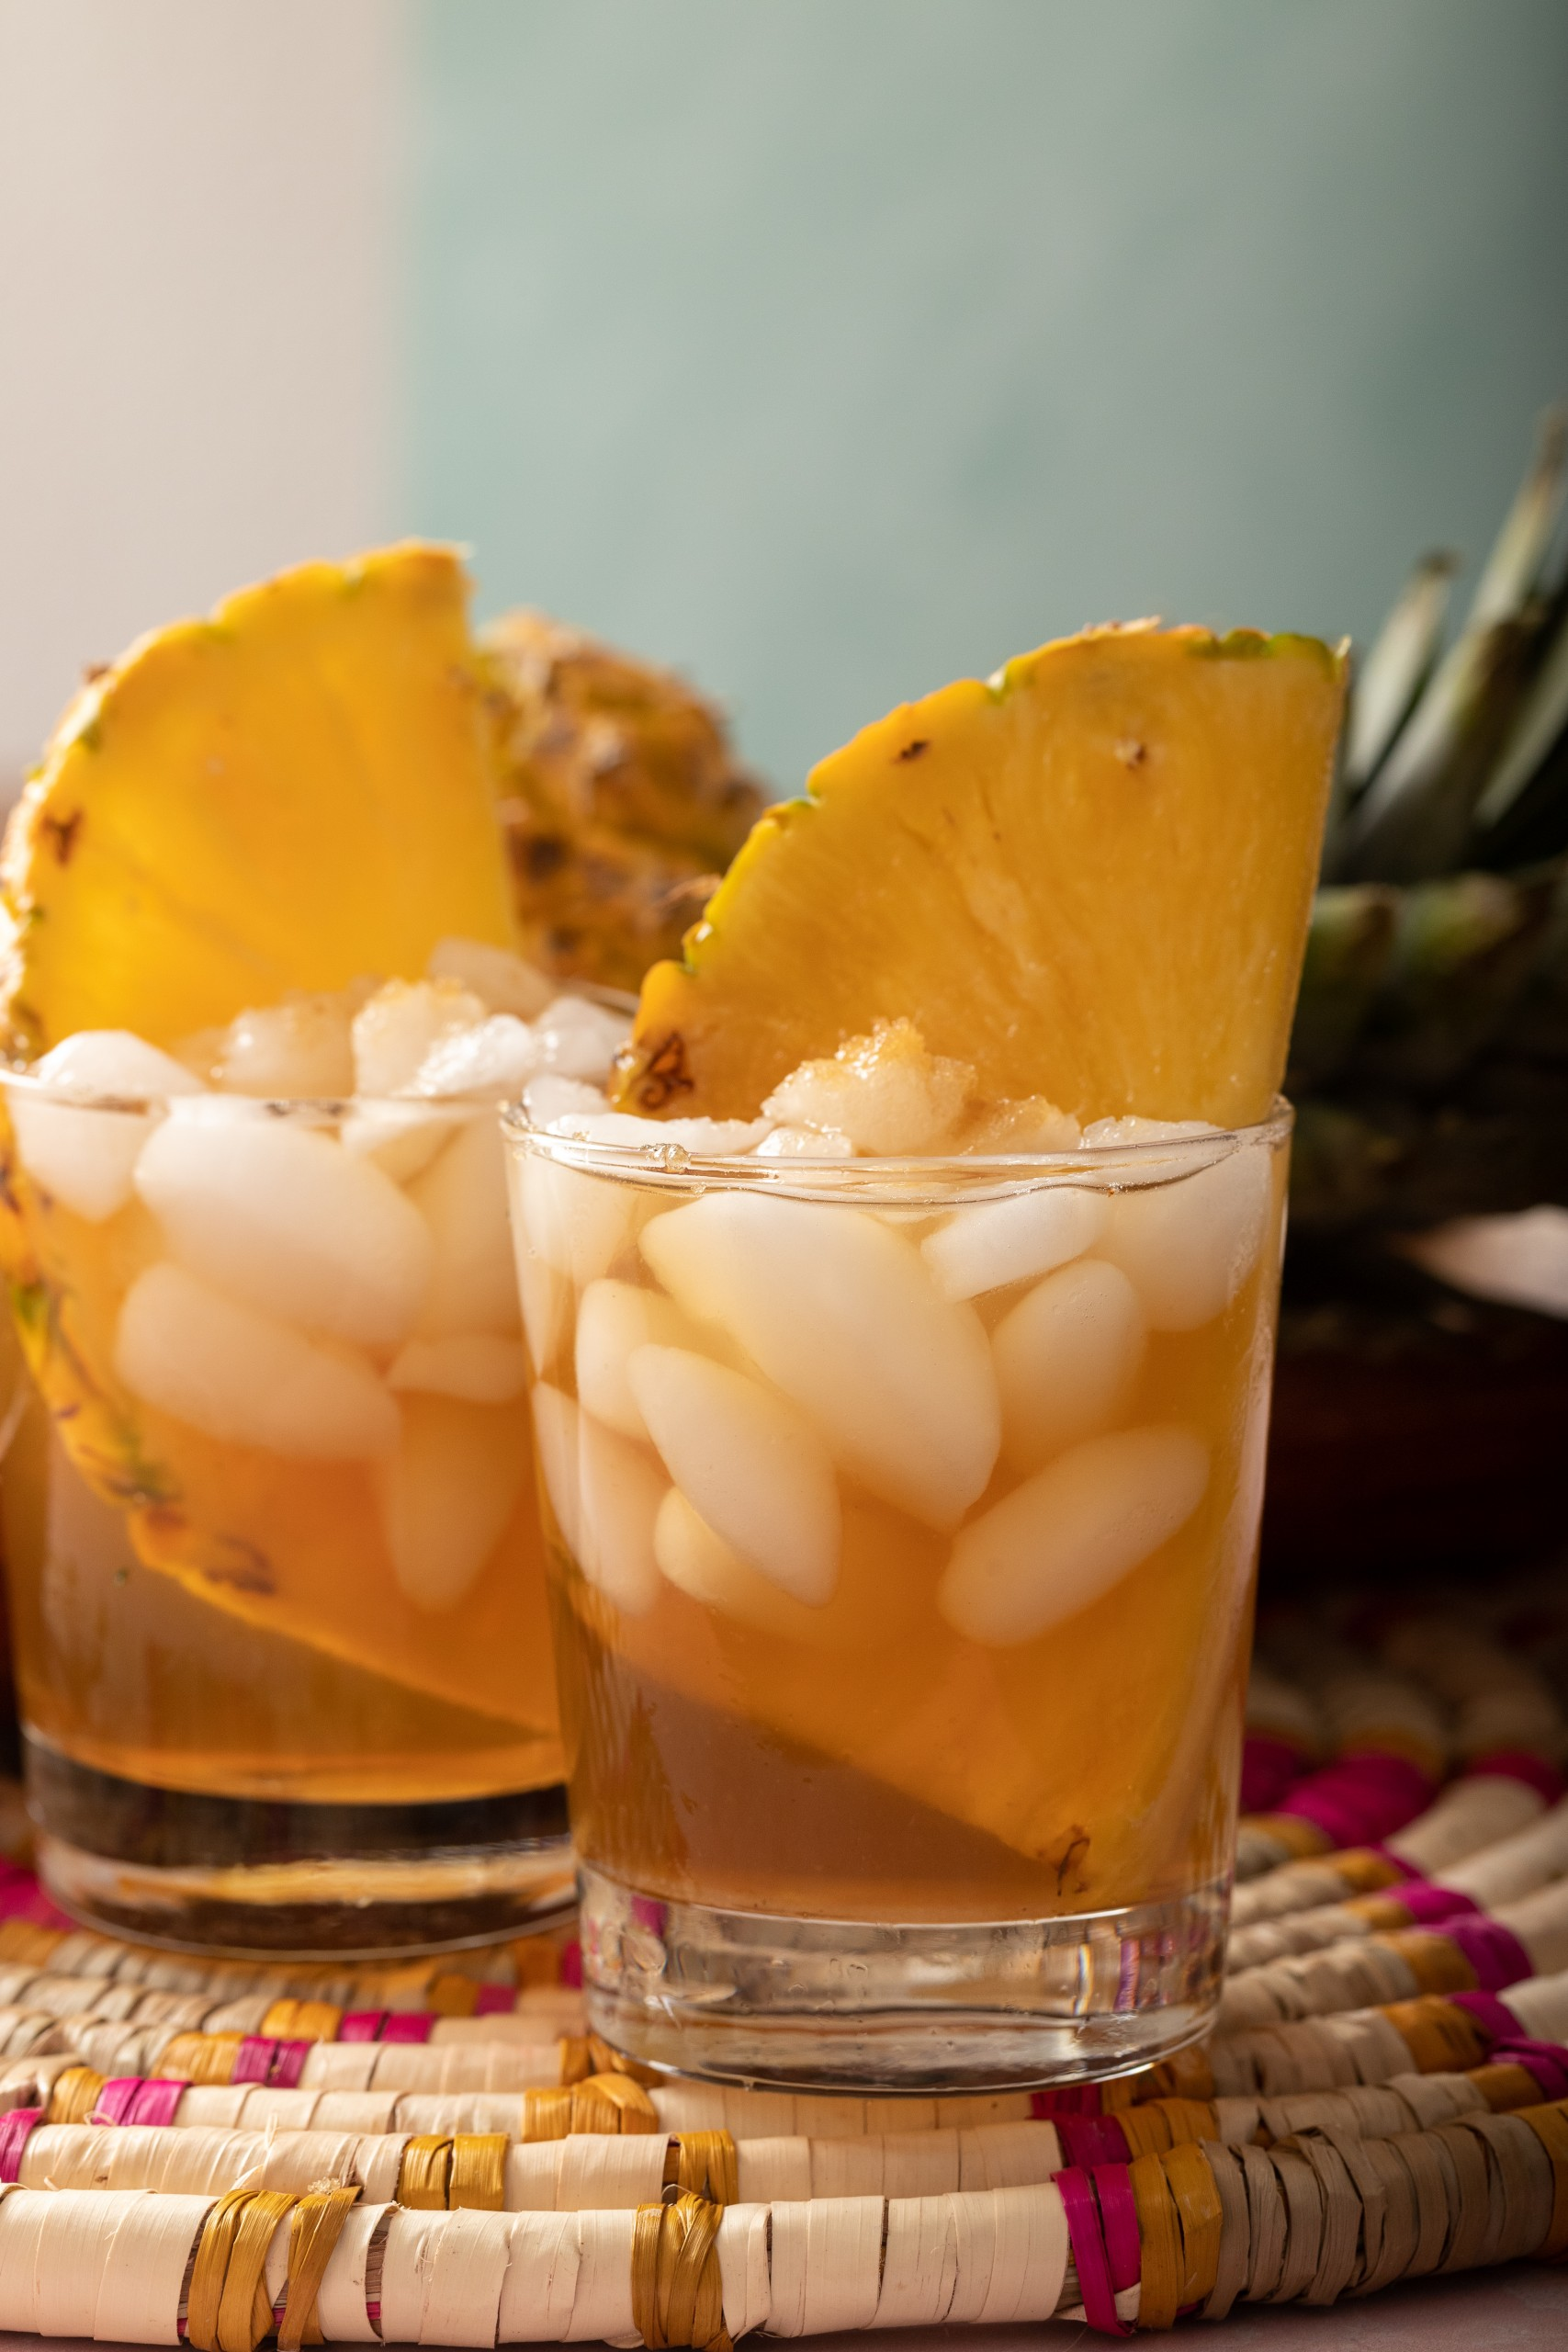 Tepache recipe from Vianney Rodriguez